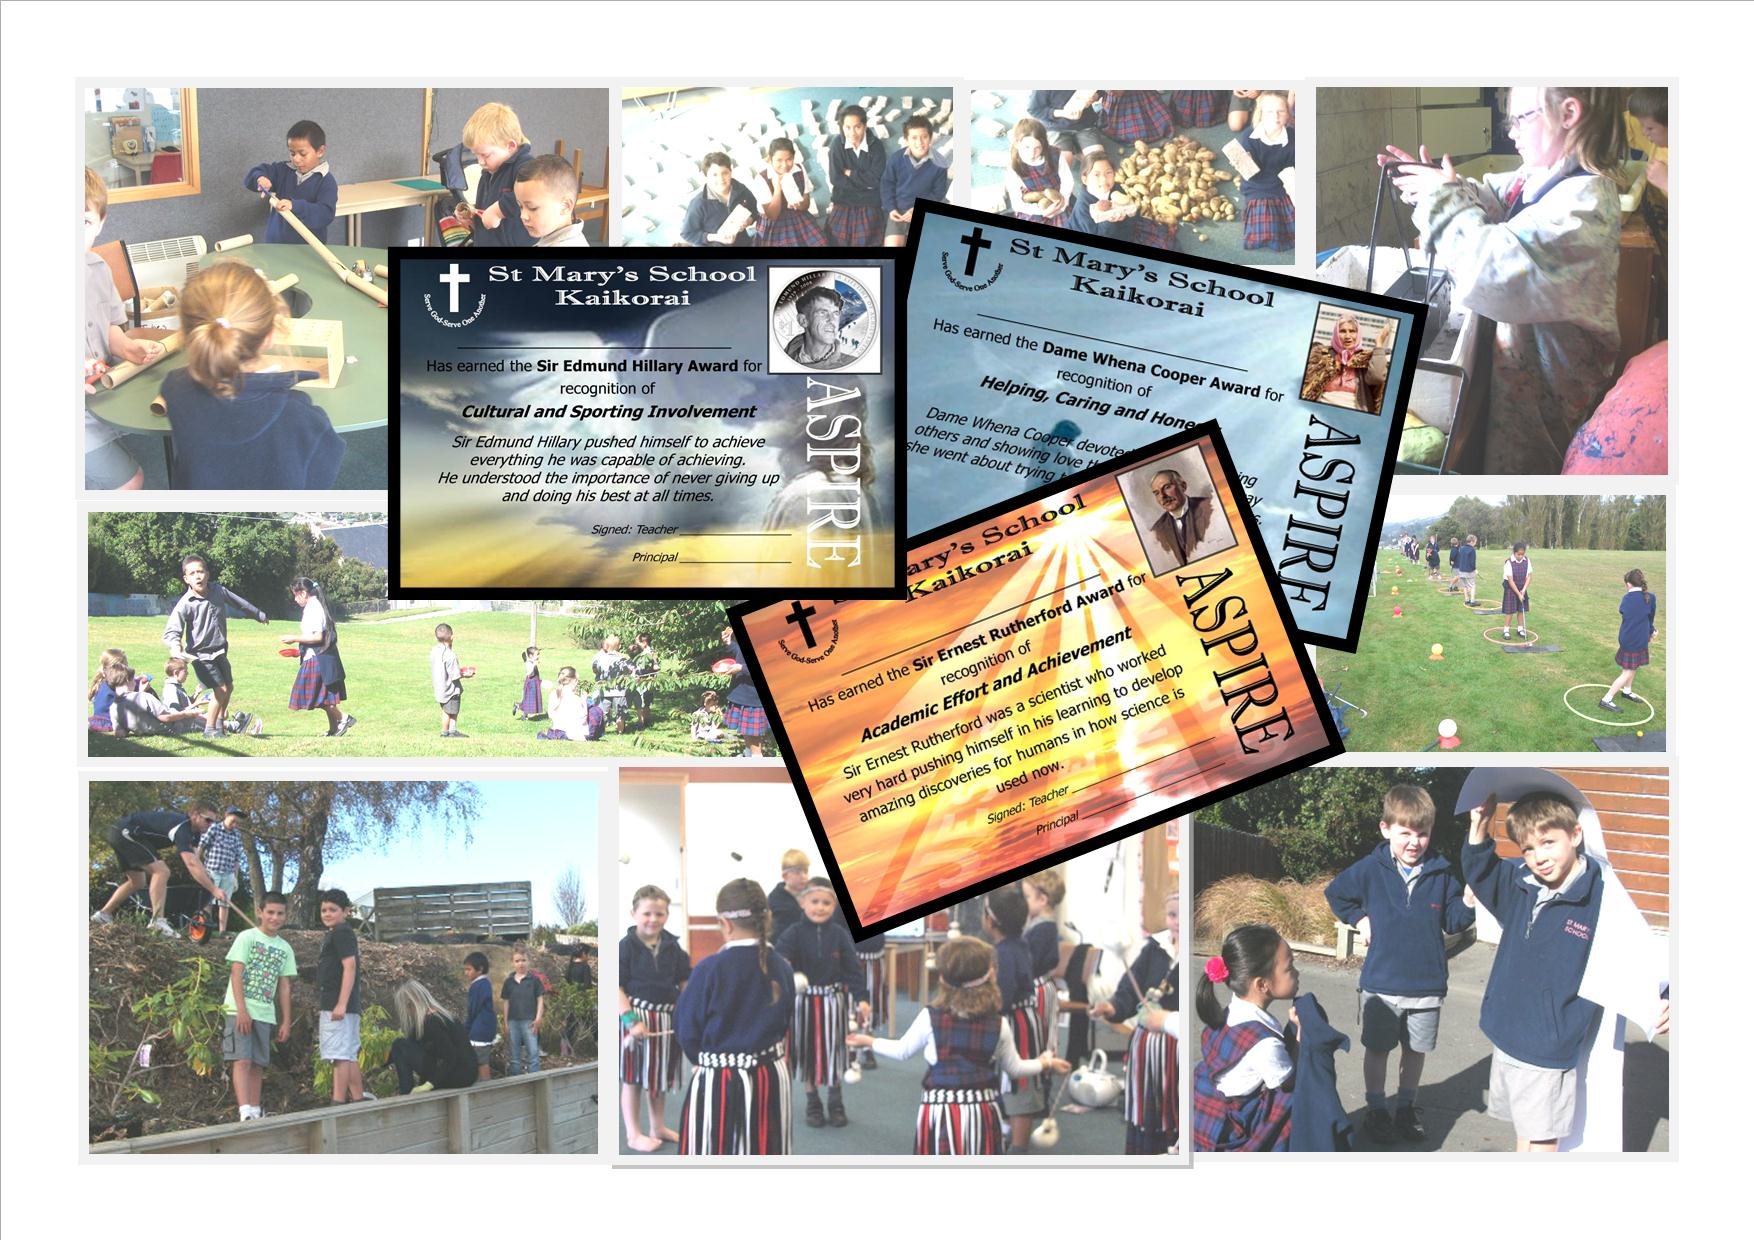 St Mary's Montage - school events 2012